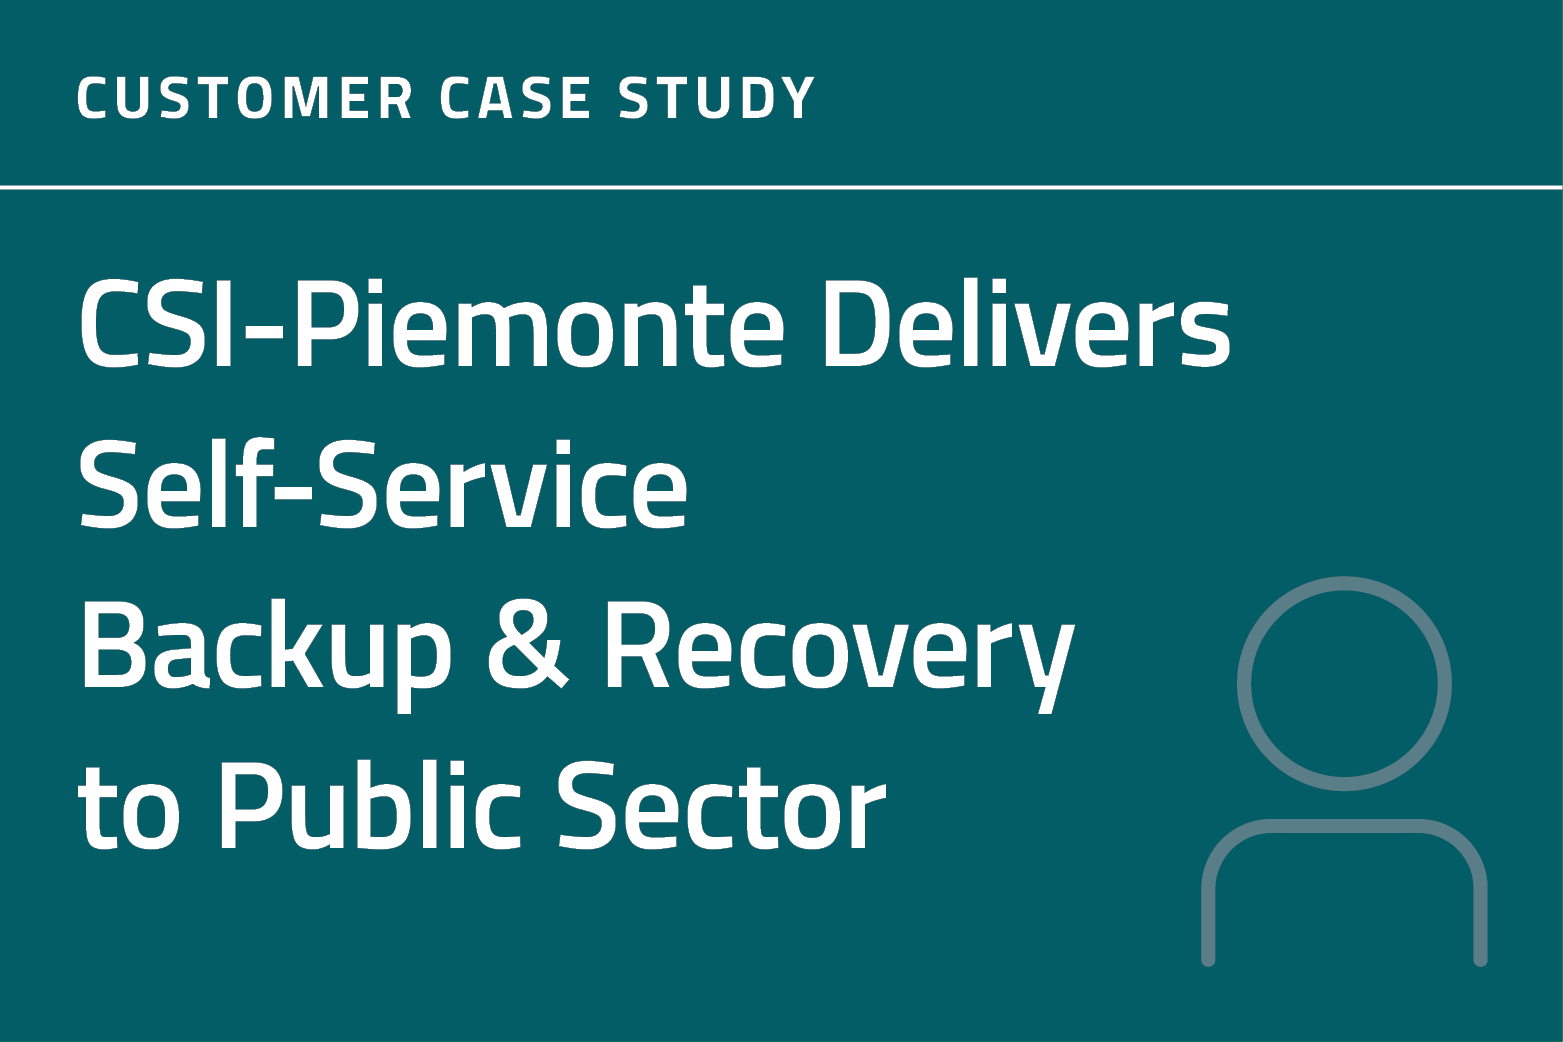 CSI-Piemonte Delivers Self-Service Backup & Recovery to Public Sector